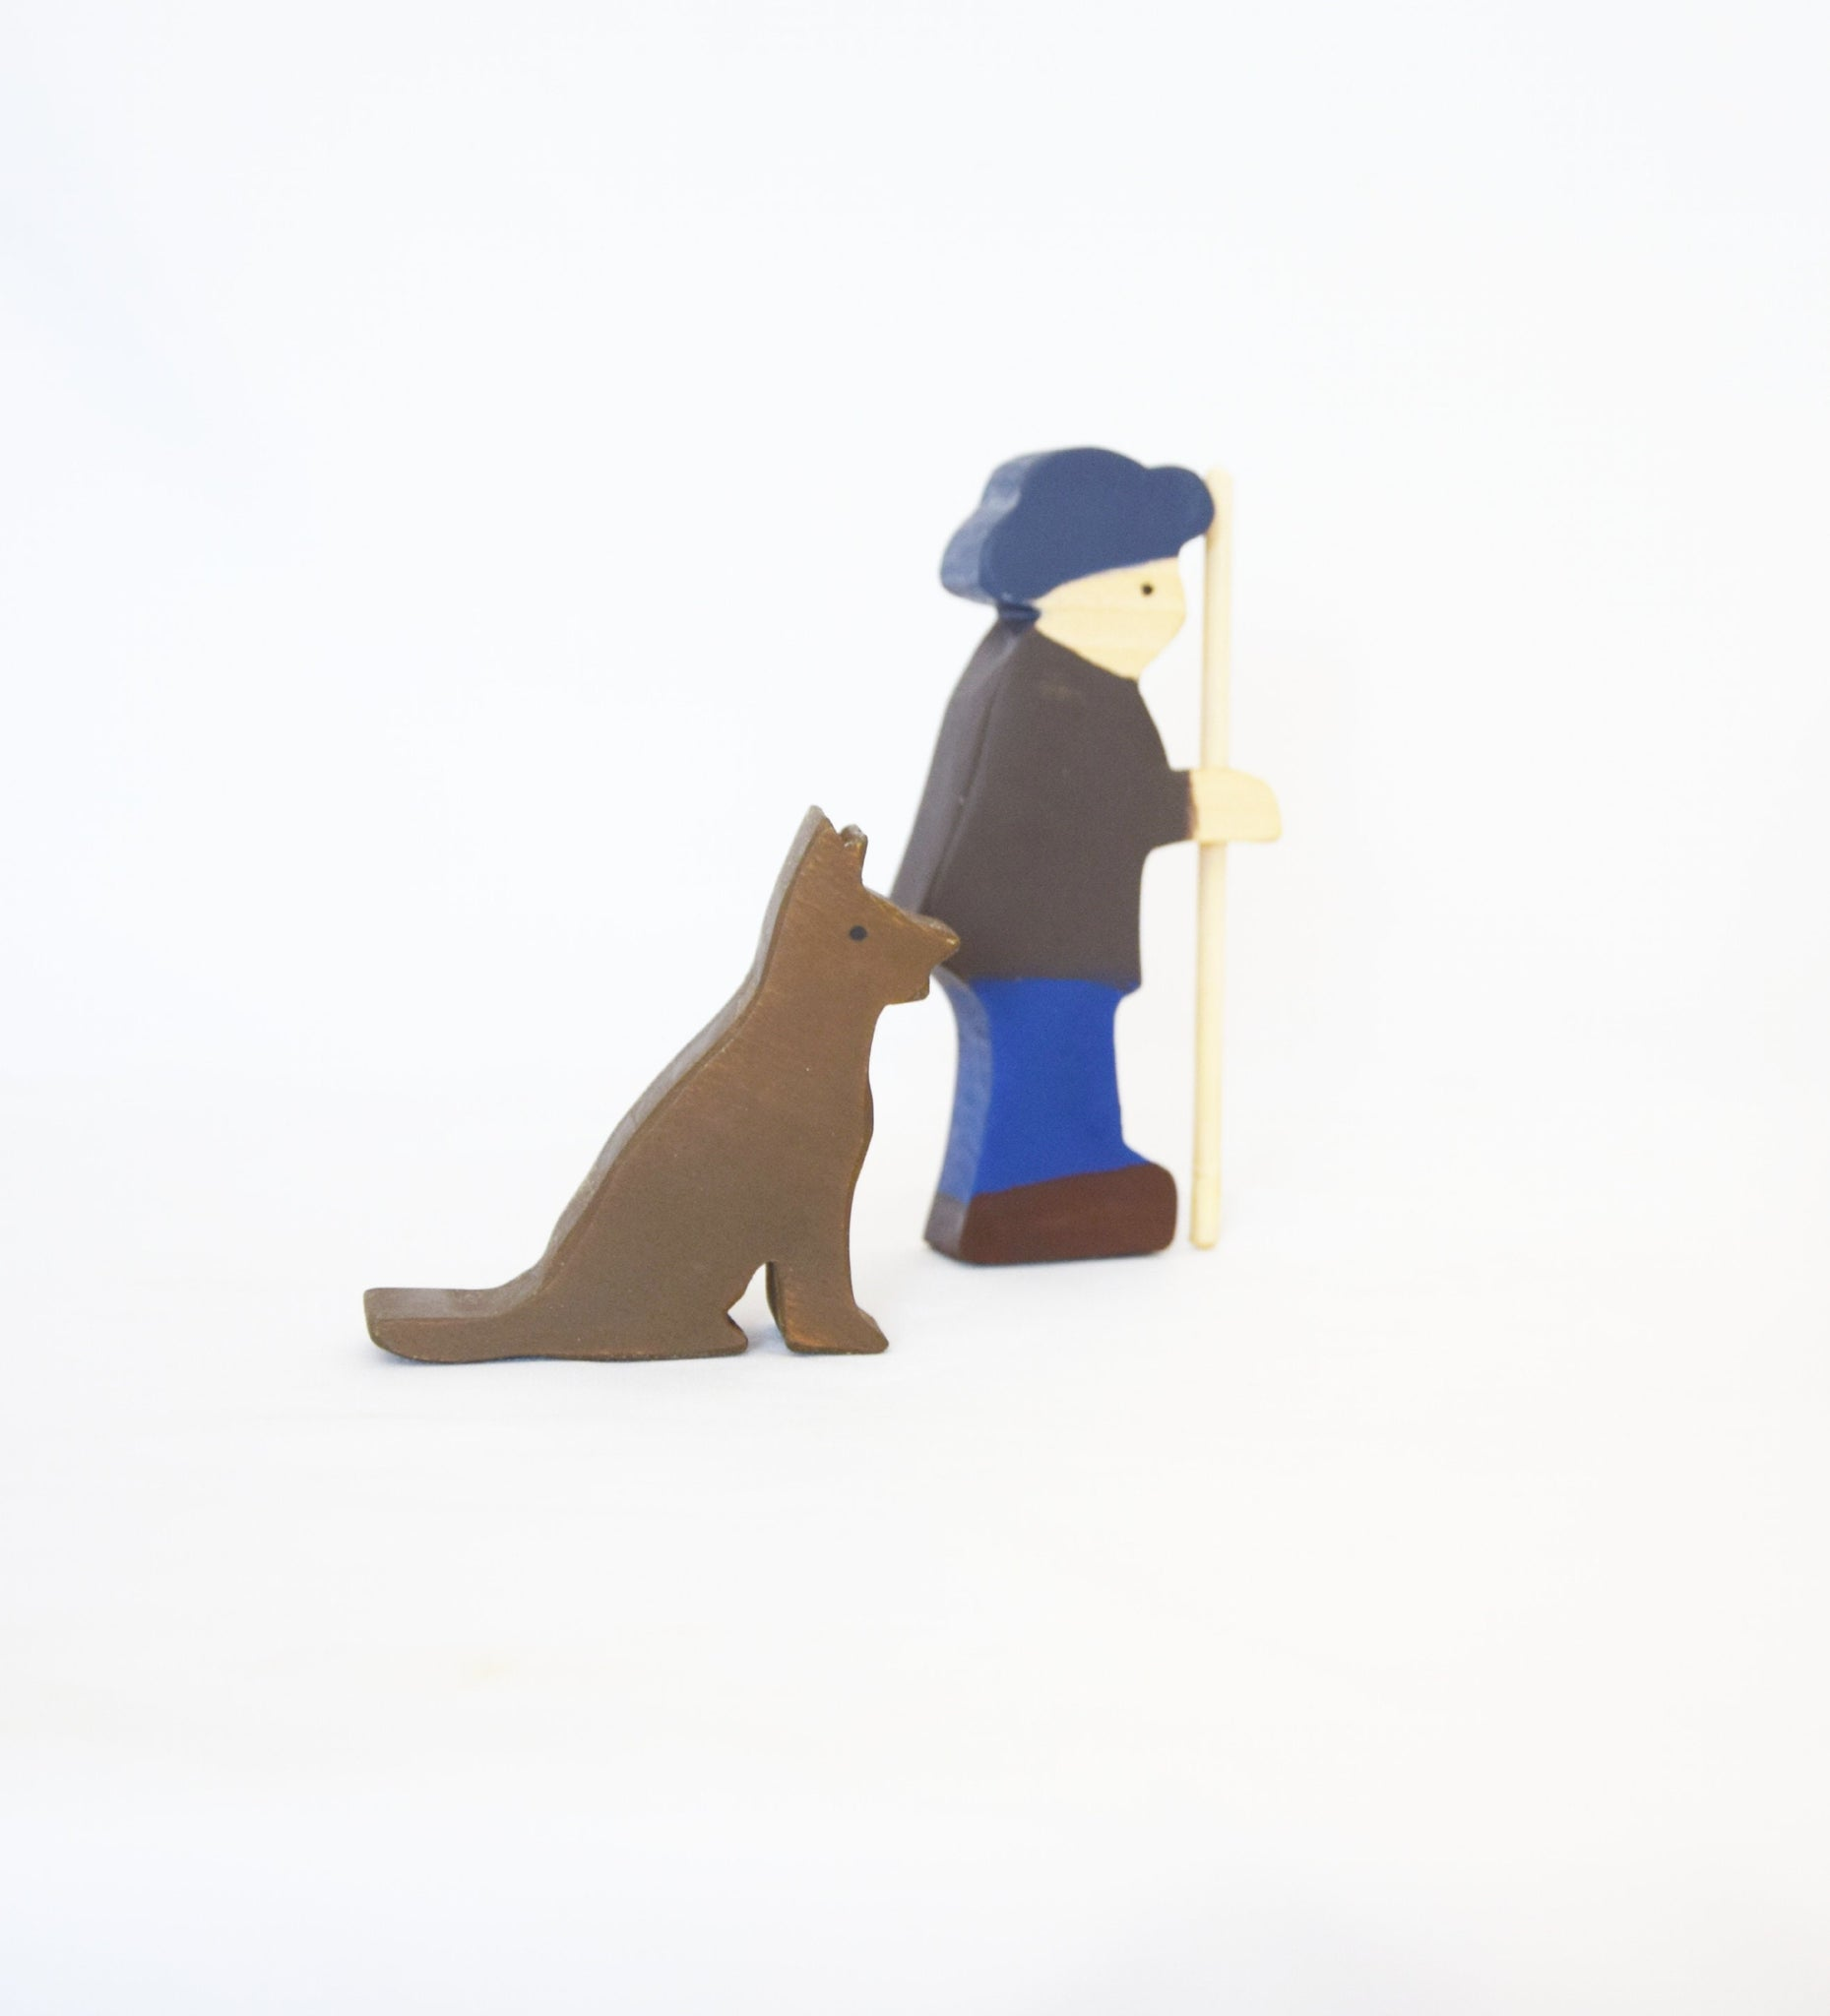 Shepherd with dog, shepherd wooden toy, wooden people figurine, waldorf inspired, open ended play, small world play set, wooden toys